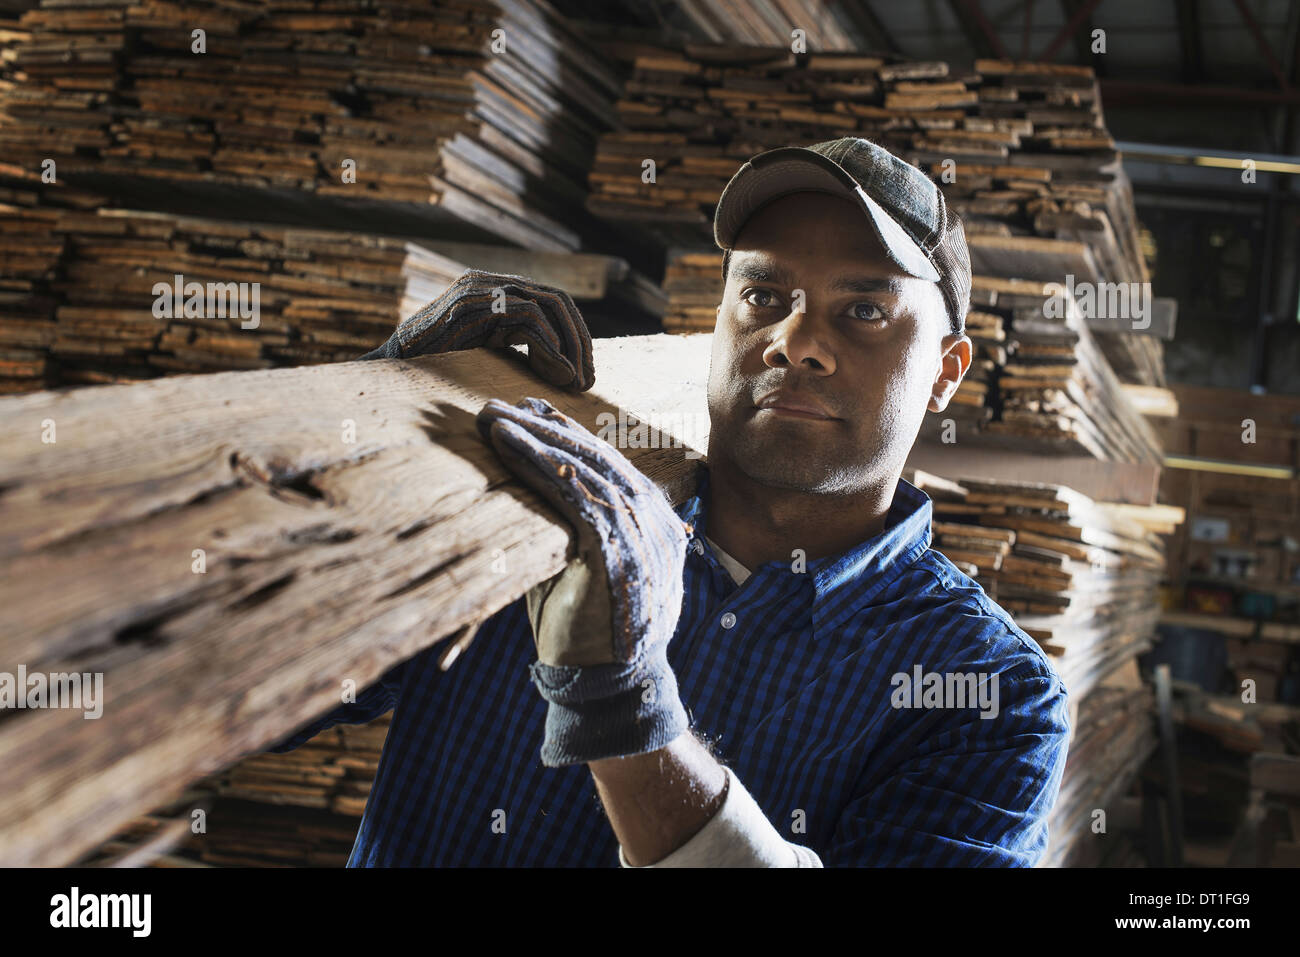 heap of recycled reclaimed timber planks of wood Environment timber yard A man carrying a large plank of splintered rough wood - Stock Image